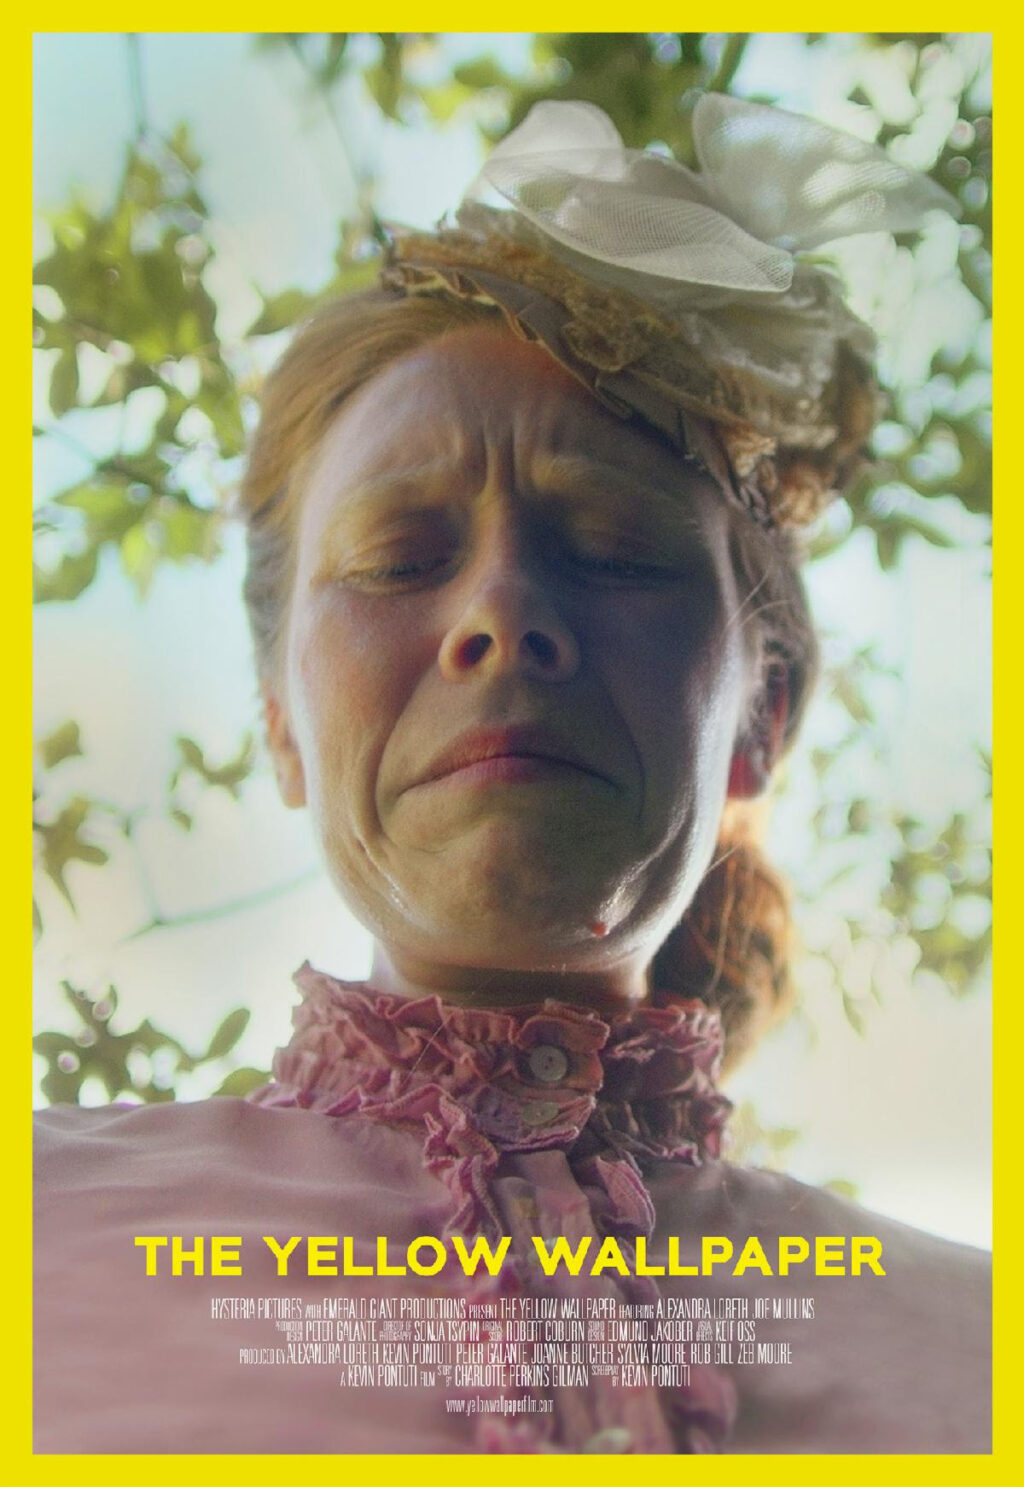 The Yellow Wallpaper Poster 1024x1487 - Trailer: THE YELLOW WALLPAPER (Based on Iconic Gothic Feminist Novella) World Premiering at Cinequest